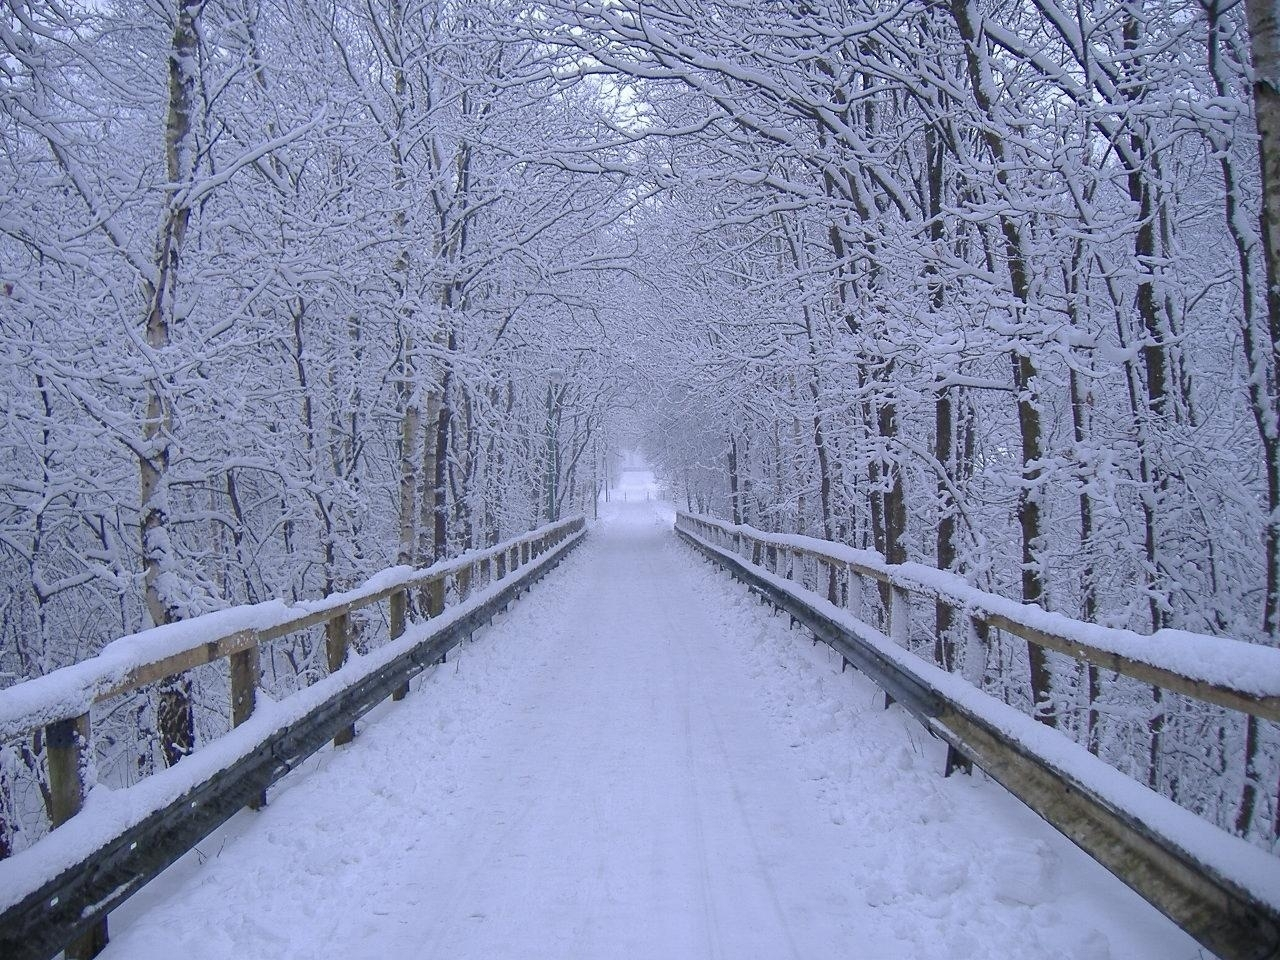 Title Free Desktop Wallpapers Winter Scenes Wallpaper Cave Dimension 1280 X 960 File Type JPG JPEG